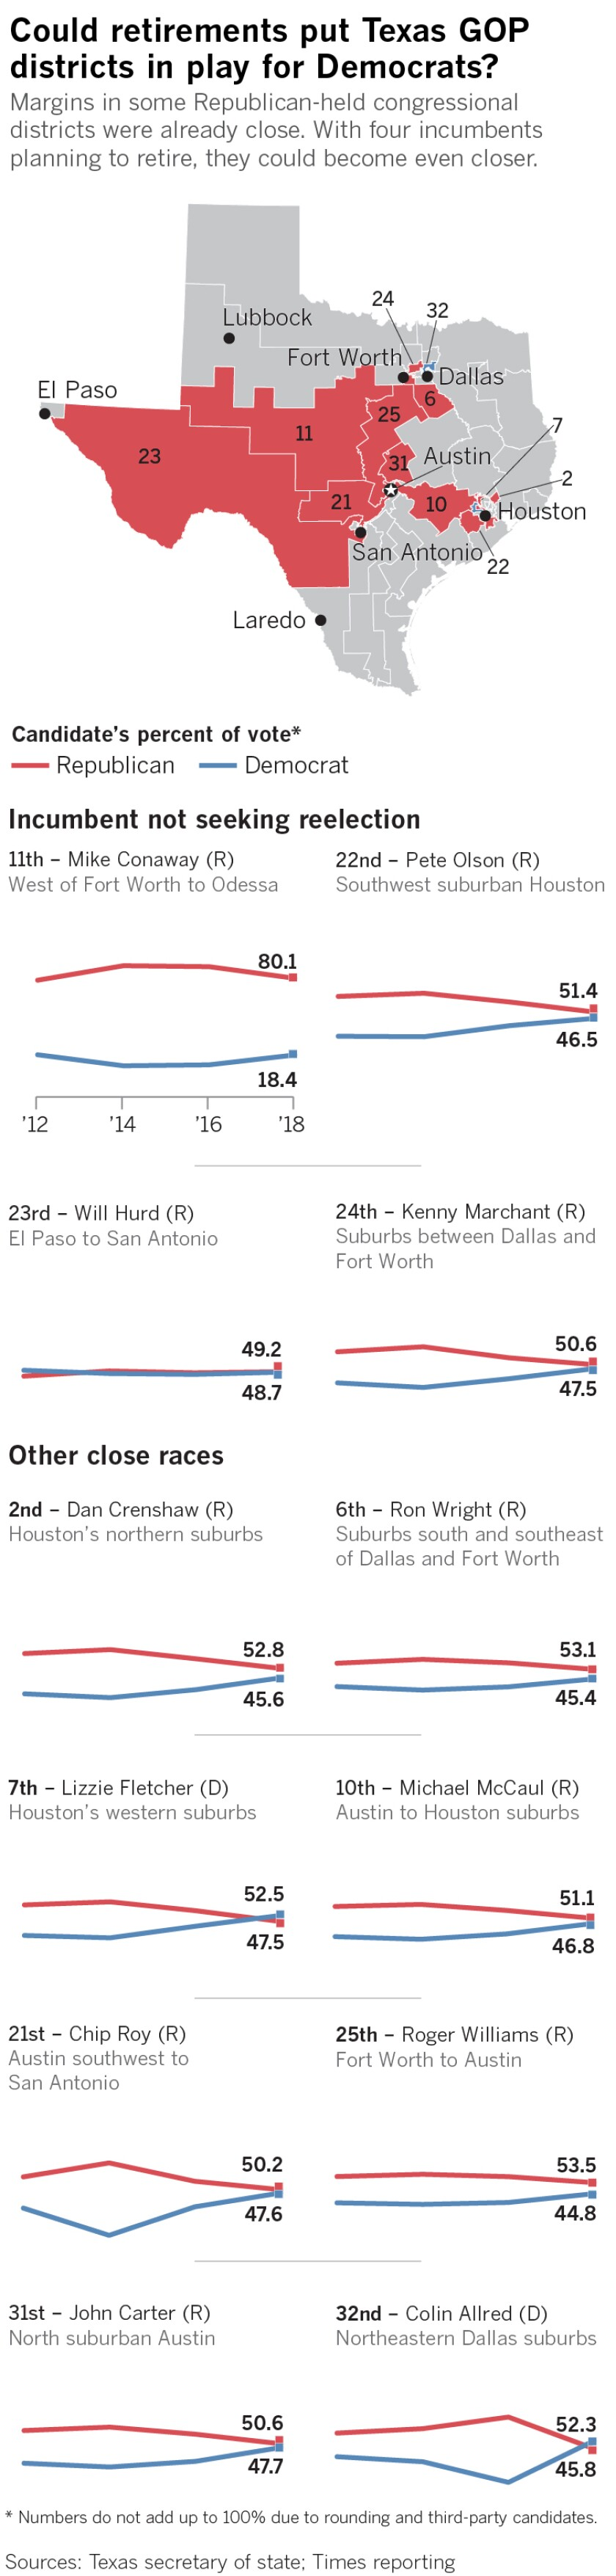 Margins in some Republican-held congressional districts were already close. With a string of Texas Republican congressmen announcing their plans to retire, the spotlight is on the Lone Star State's suburbs, where Democrats stand to gain from changing demographics and women moving away from the GOP.